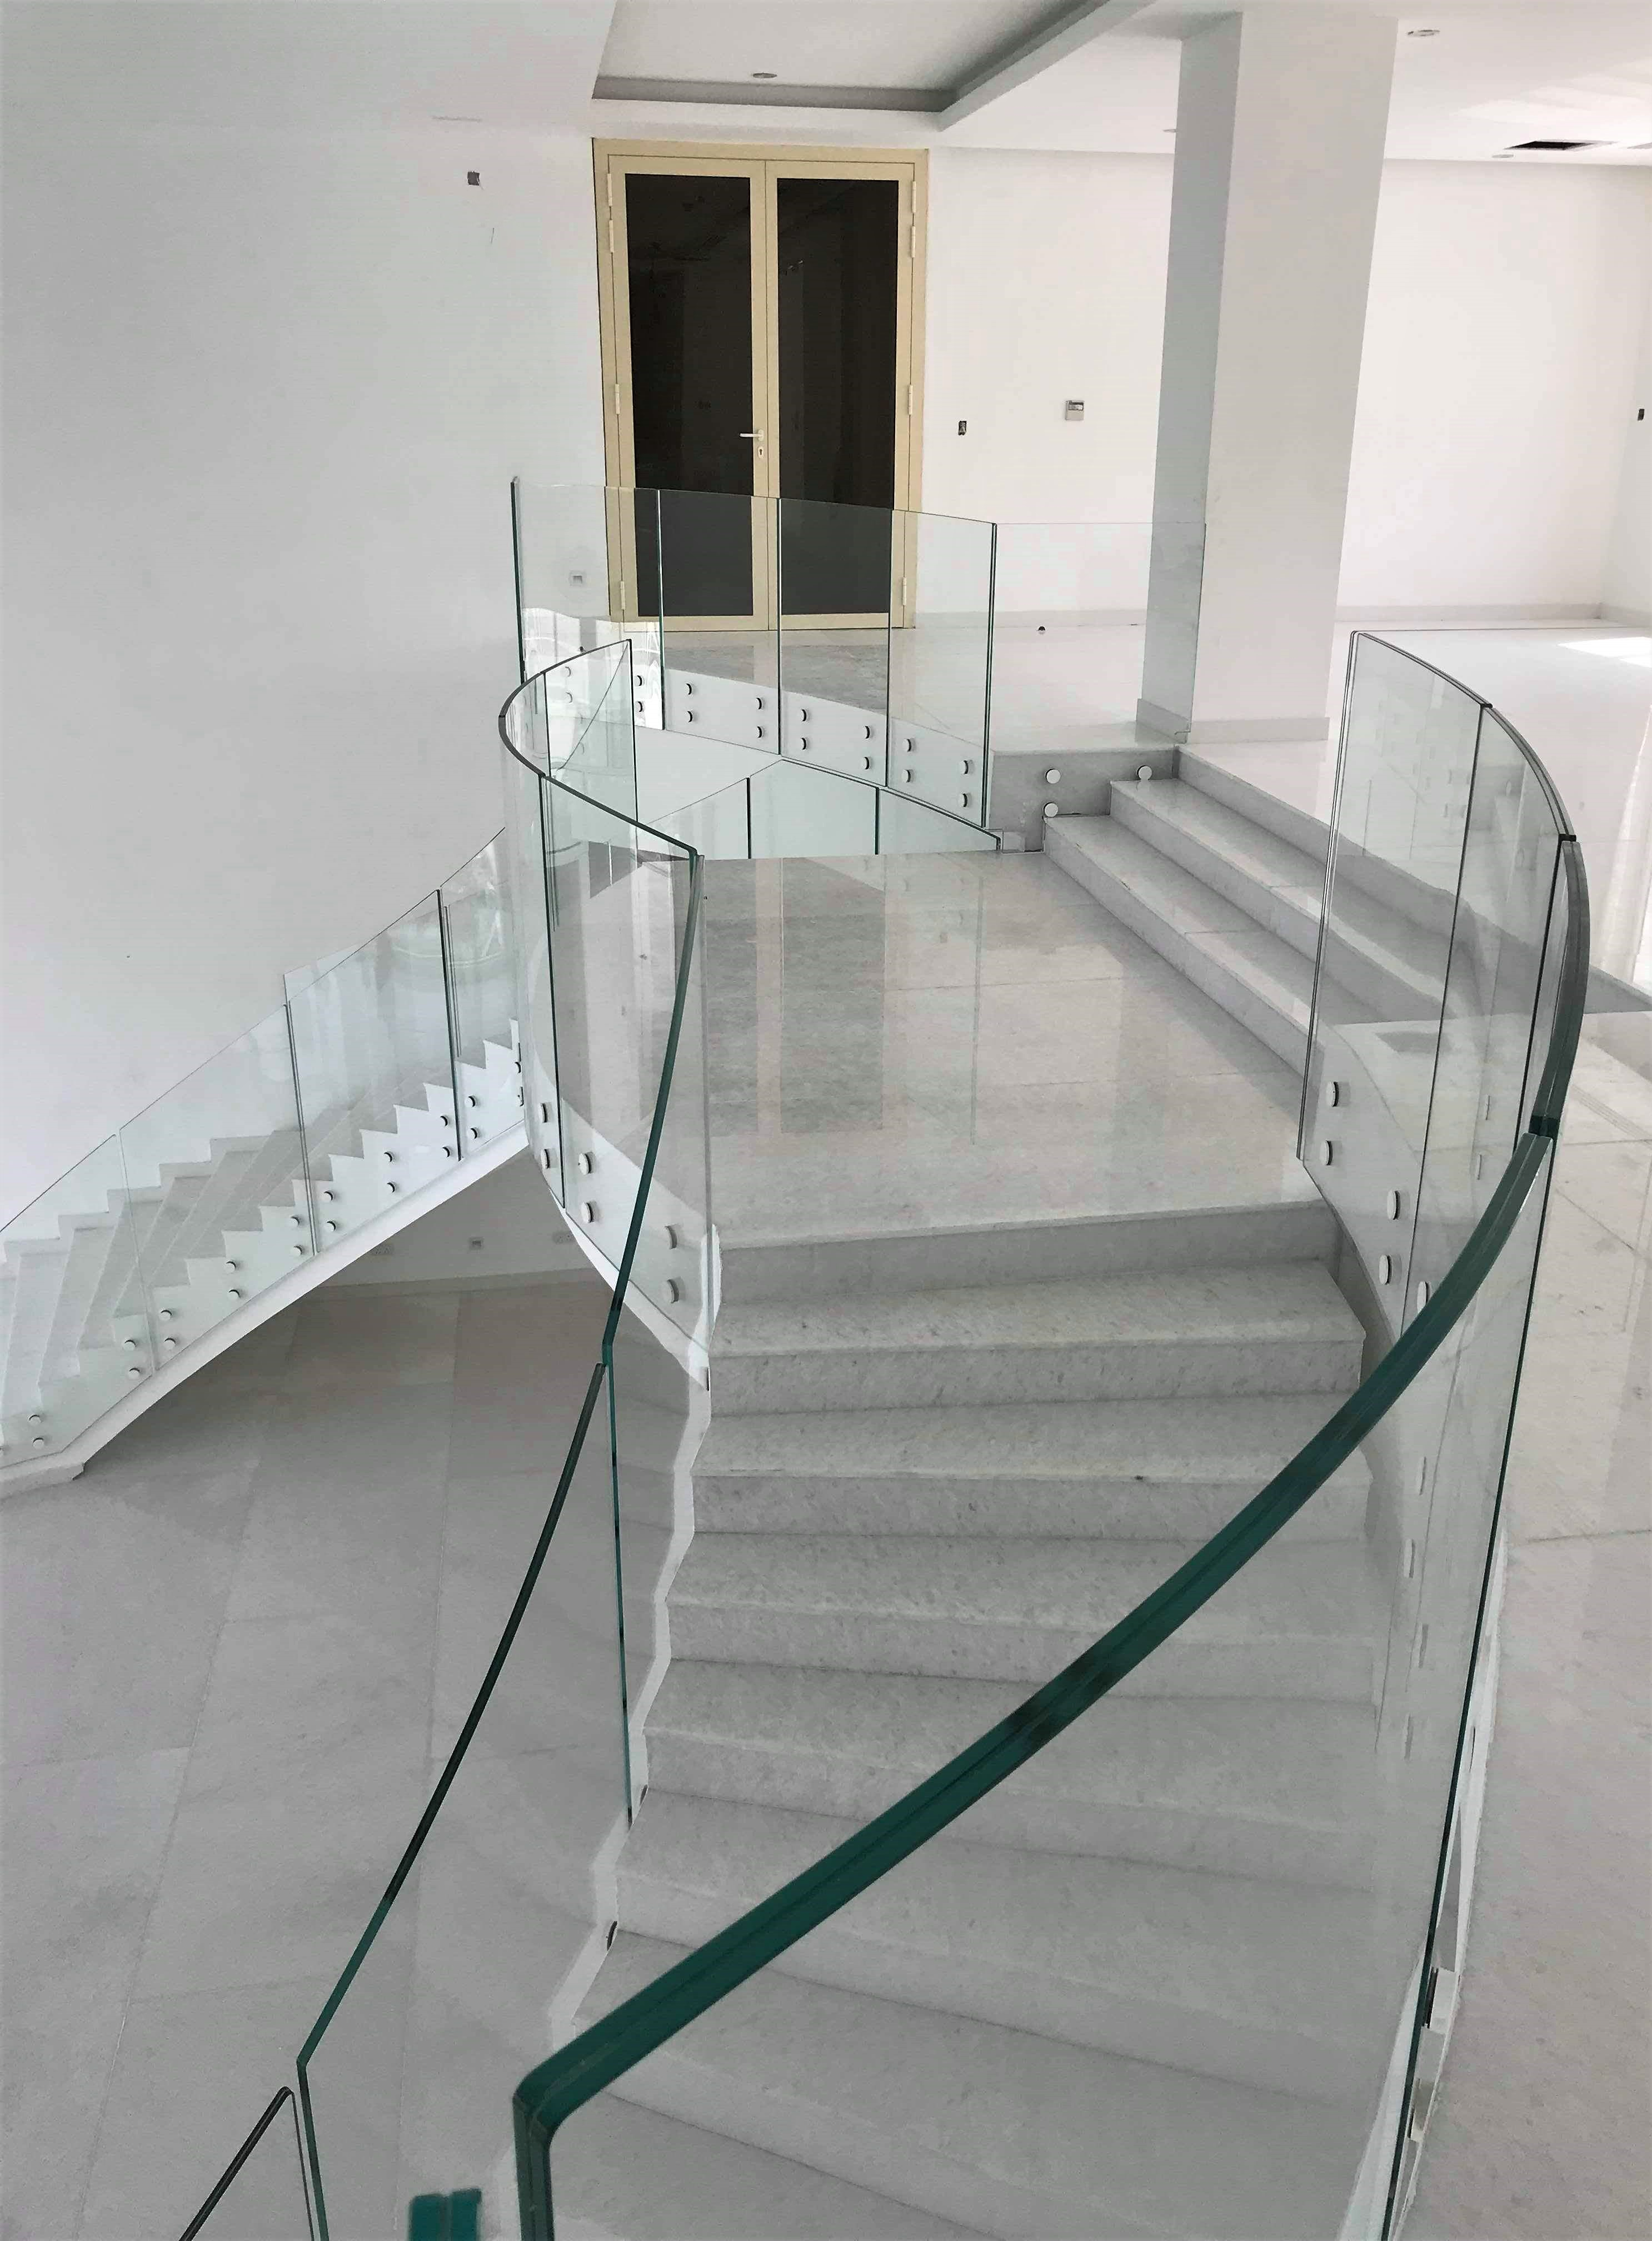 Frameless curved glass balustrade and mezzanine floor